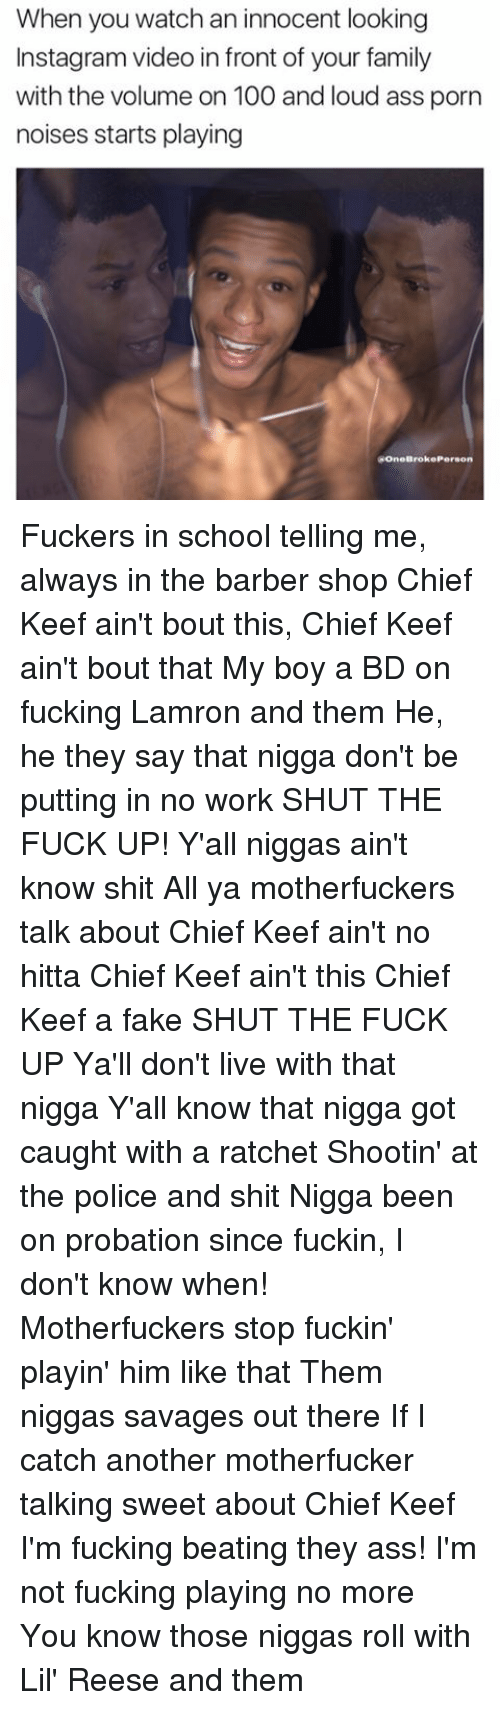 Chief Keef, Memes, and Barber Shop: When you watch an innocent looking  Instagramvideo in front of your family  with the volume on 100 and loud ass porn  noises starts playing  ROneBroke Person Fuckers in school telling me, always in the barber shop Chief Keef ain't bout this, Chief Keef ain't bout that My boy a BD on fucking Lamron and them He, he they say that nigga don't be putting in no work SHUT THE FUCK UP! Y'all niggas ain't know shit All ya motherfuckers talk about Chief Keef ain't no hitta Chief Keef ain't this Chief Keef a fake SHUT THE FUCK UP Ya'll don't live with that nigga Y'all know that nigga got caught with a ratchet Shootin' at the police and shit Nigga been on probation since fuckin, I don't know when! Motherfuckers stop fuckin' playin' him like that Them niggas savages out there If I catch another motherfucker talking sweet about Chief Keef I'm fucking beating they ass! I'm not fucking playing no more You know those niggas roll with Lil' Reese and them